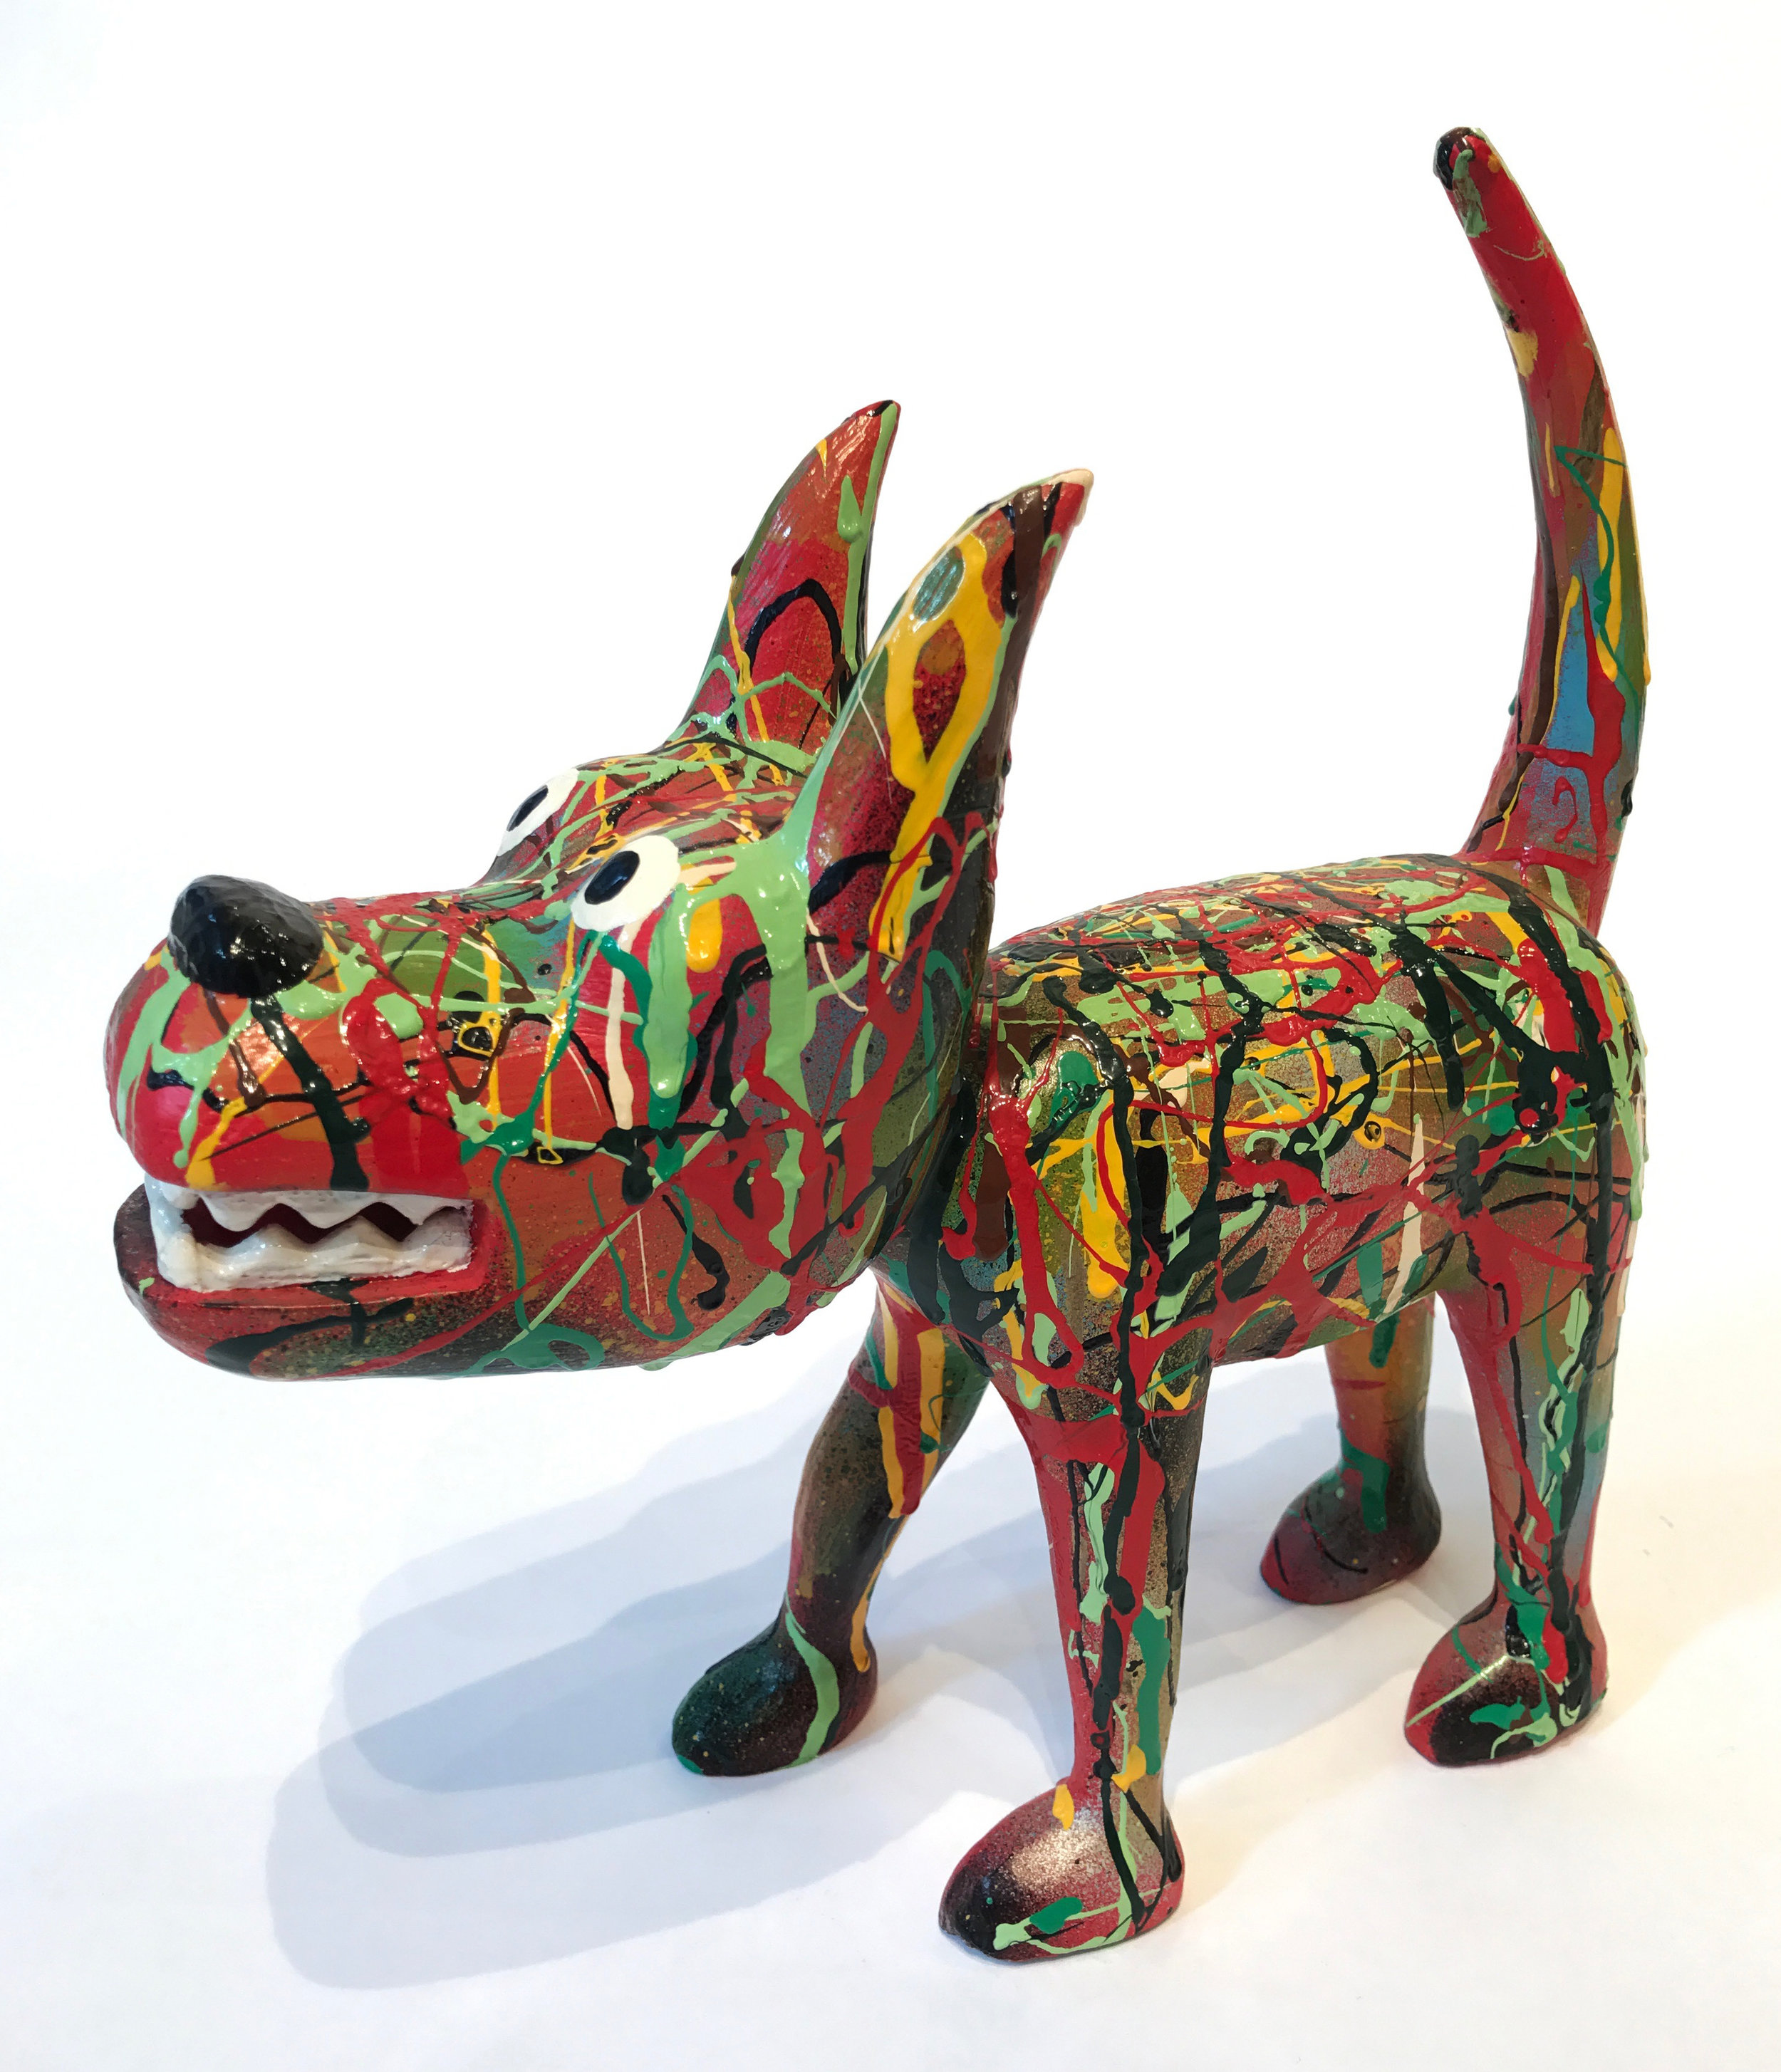 """Dog 12"" Sculpture, unique item 27 x 24 x 9 cm 2010"